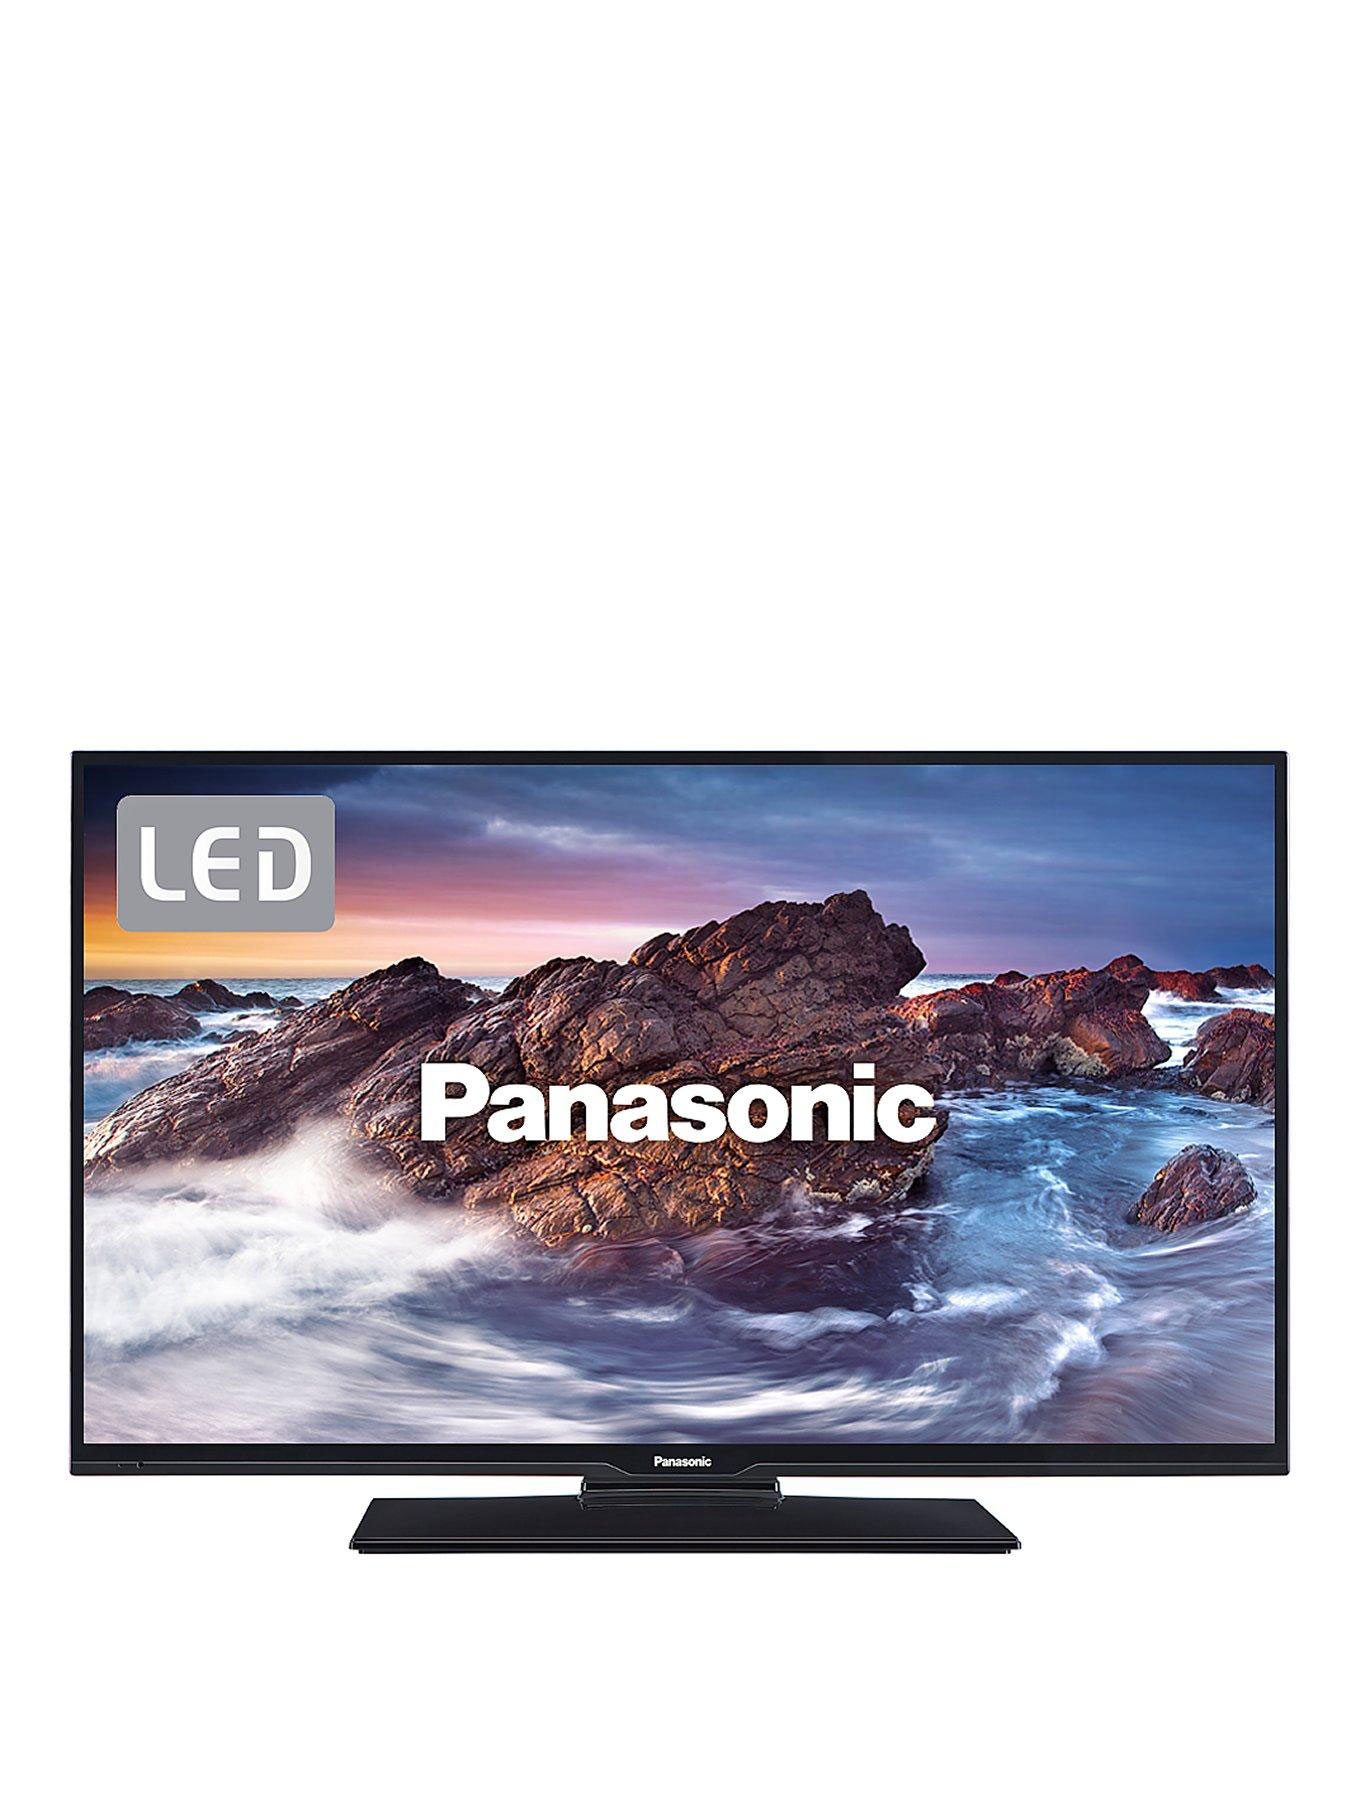 panasonic tv shop for cheap televisions and save online. Black Bedroom Furniture Sets. Home Design Ideas